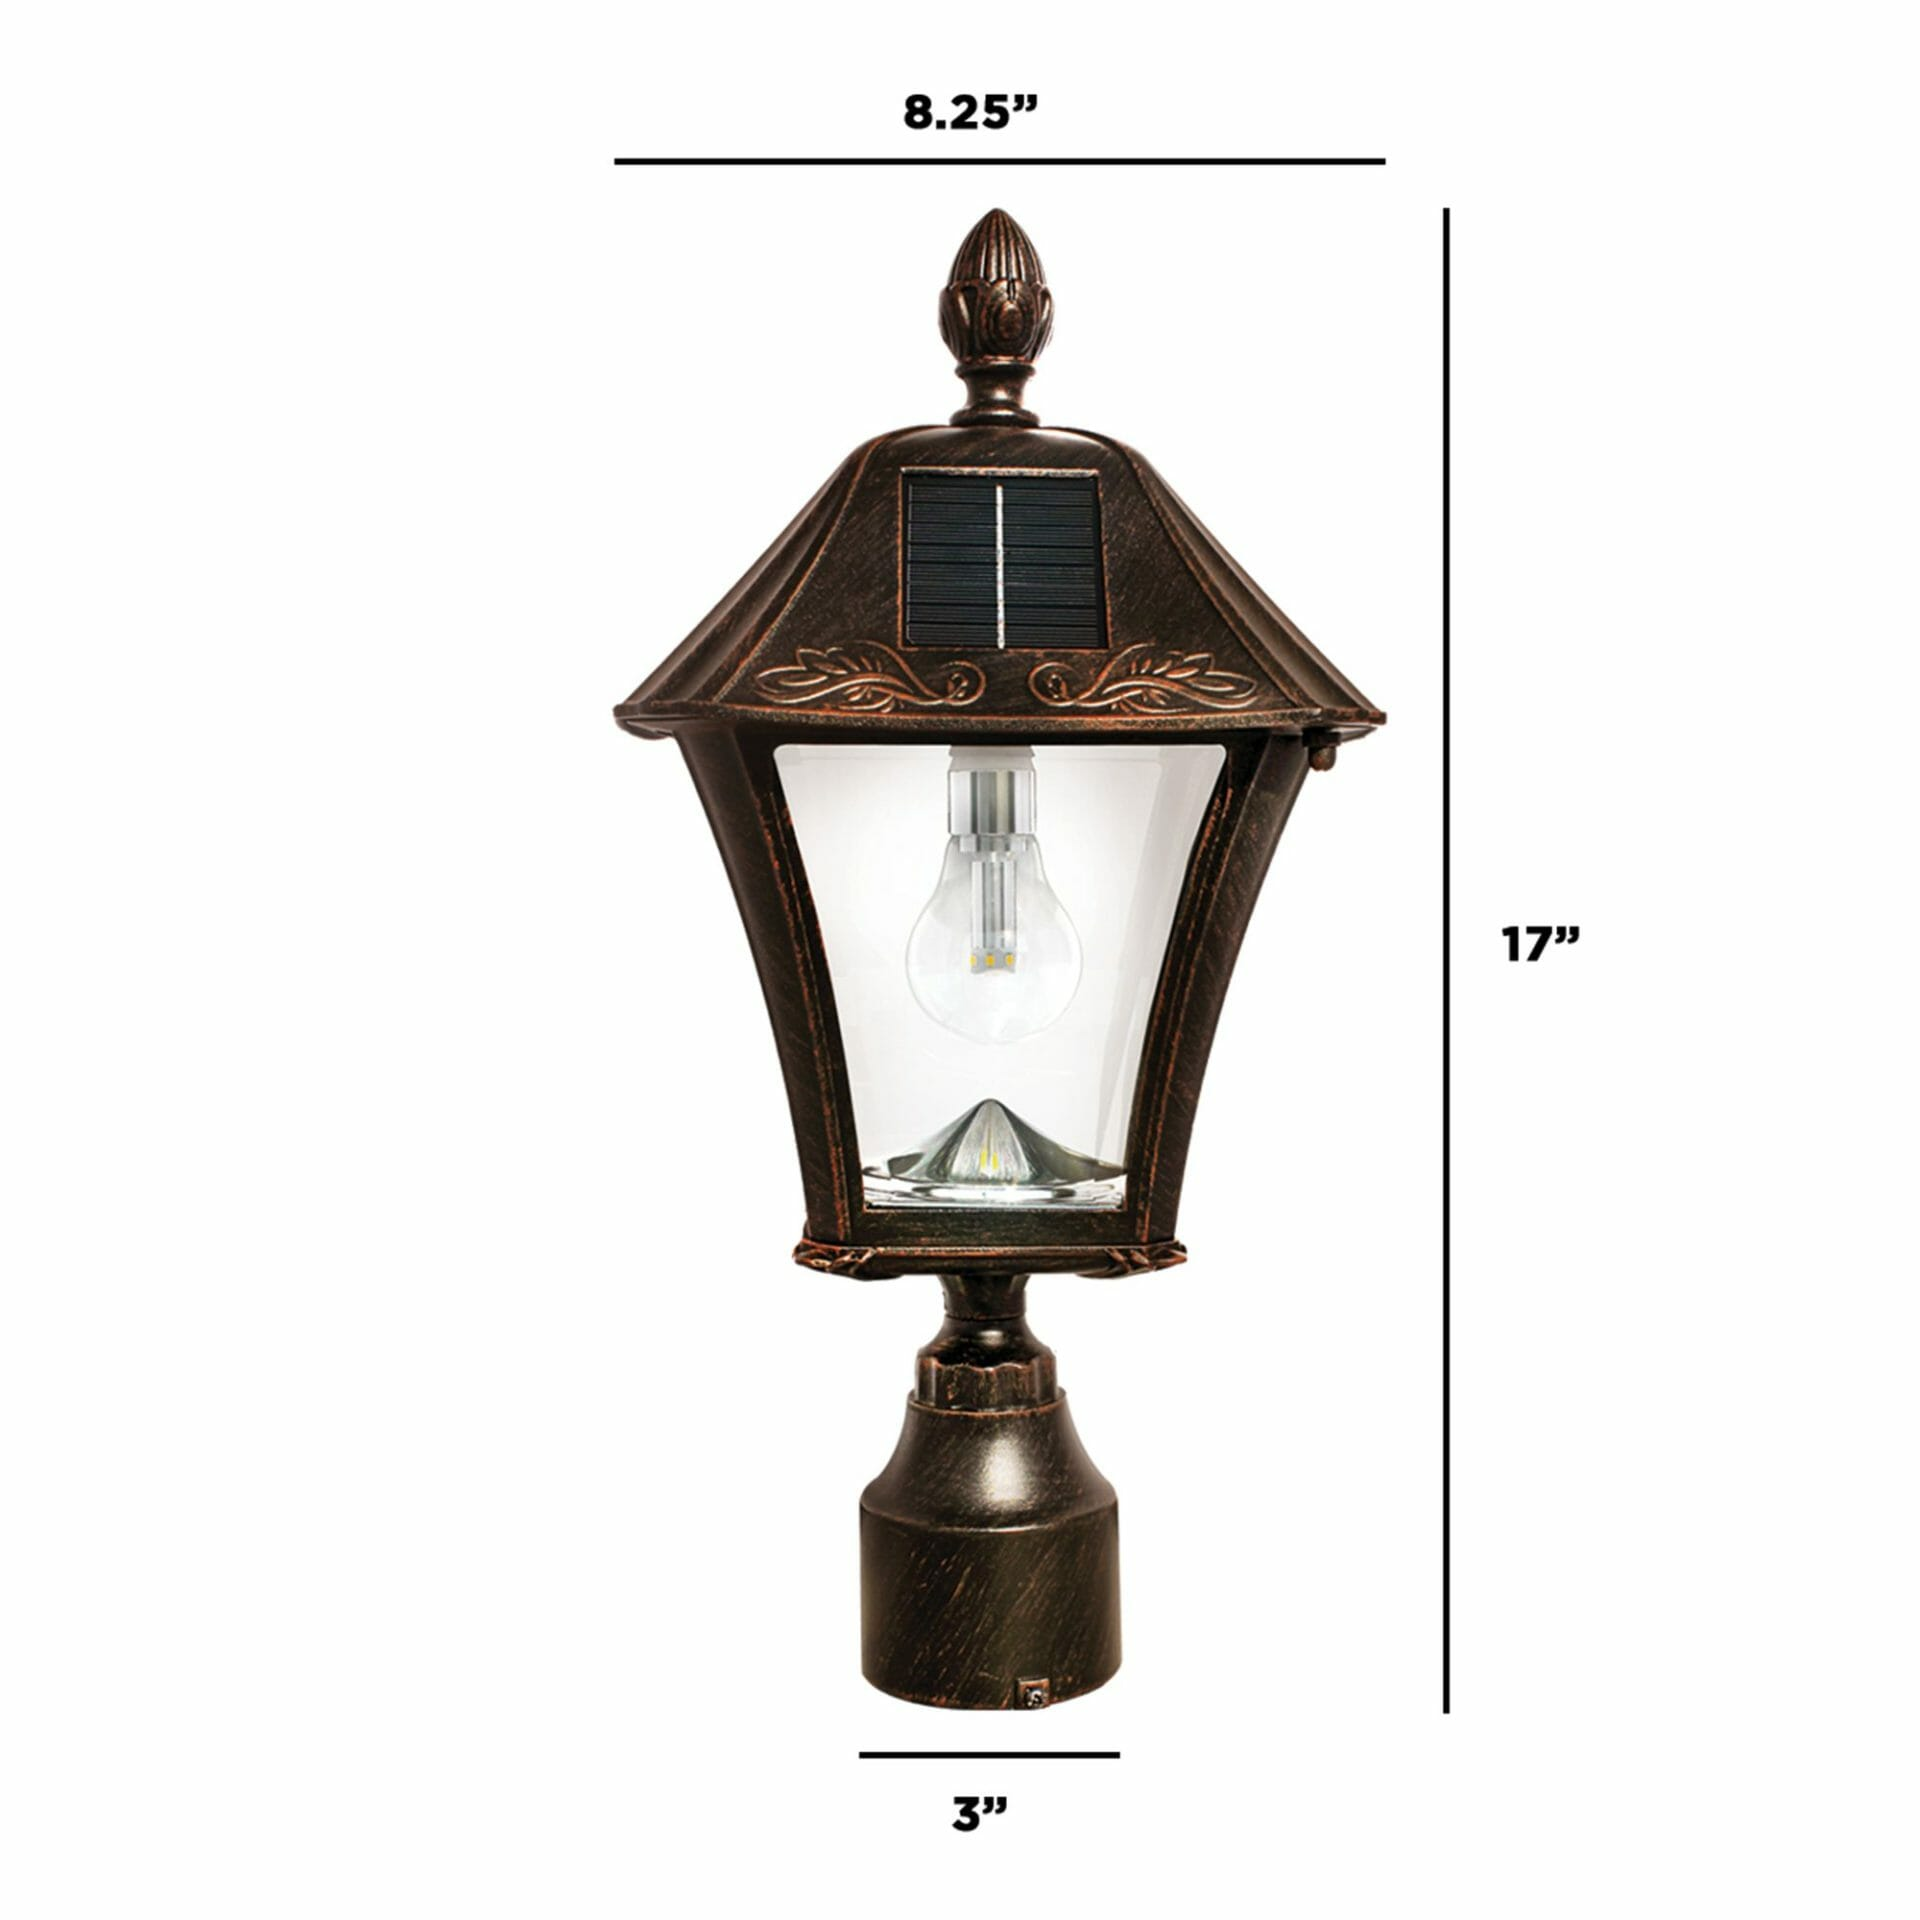 Baytown Bulb Solar Lamp with 3 Mounting Options - Dimensions